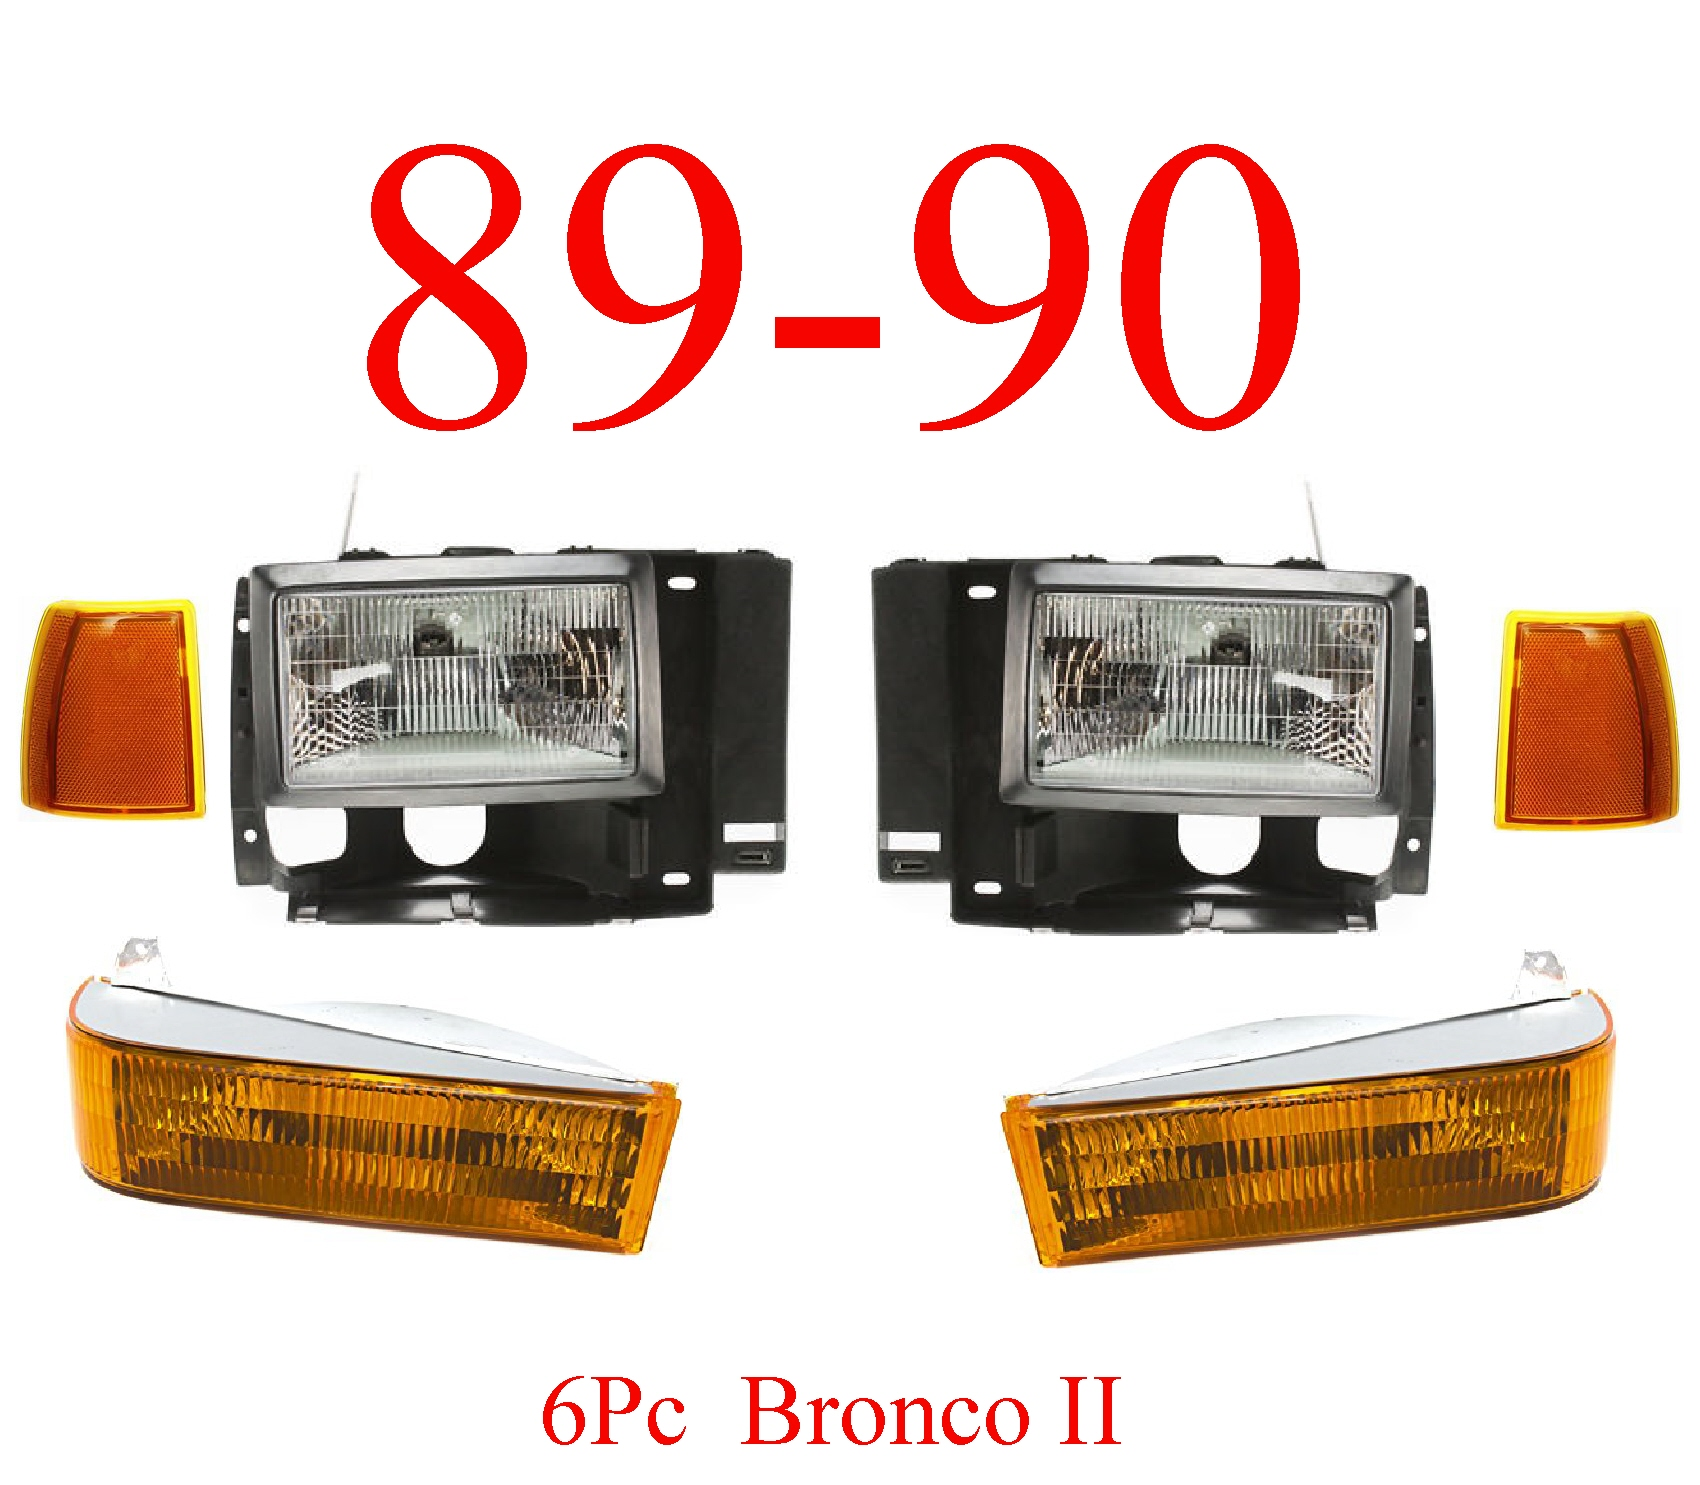 89-90 Ford Bronco II 6Pc Head Light Kit